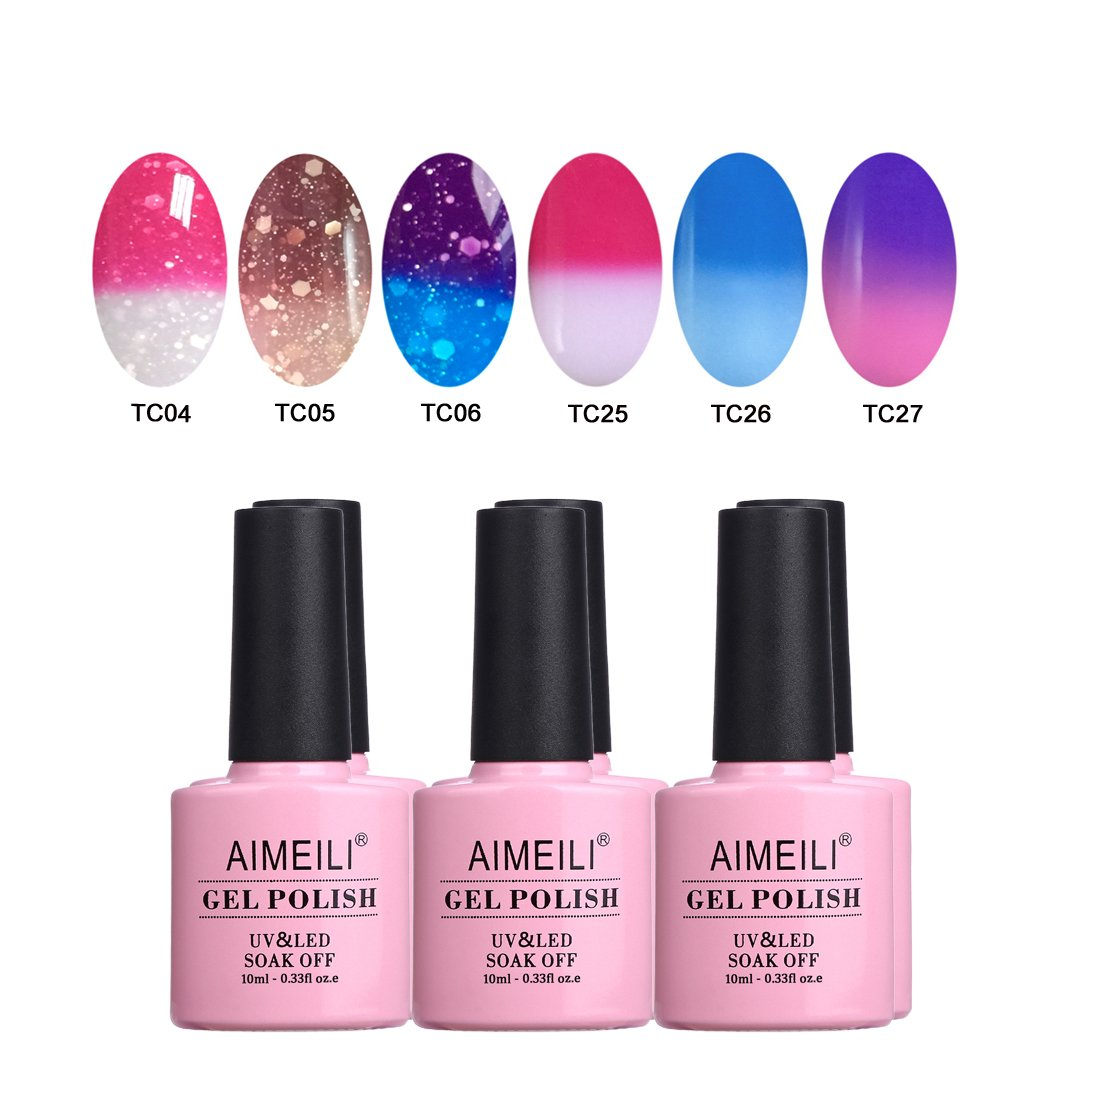 AIMEILI Soak Off UV LED Nude Pastel Vernis à Ongles Gel Semi-Permanent Lot Color Mix/Multi-Colored Kit Set Ensemble de Couleurs 6 X 10ml - Set 22